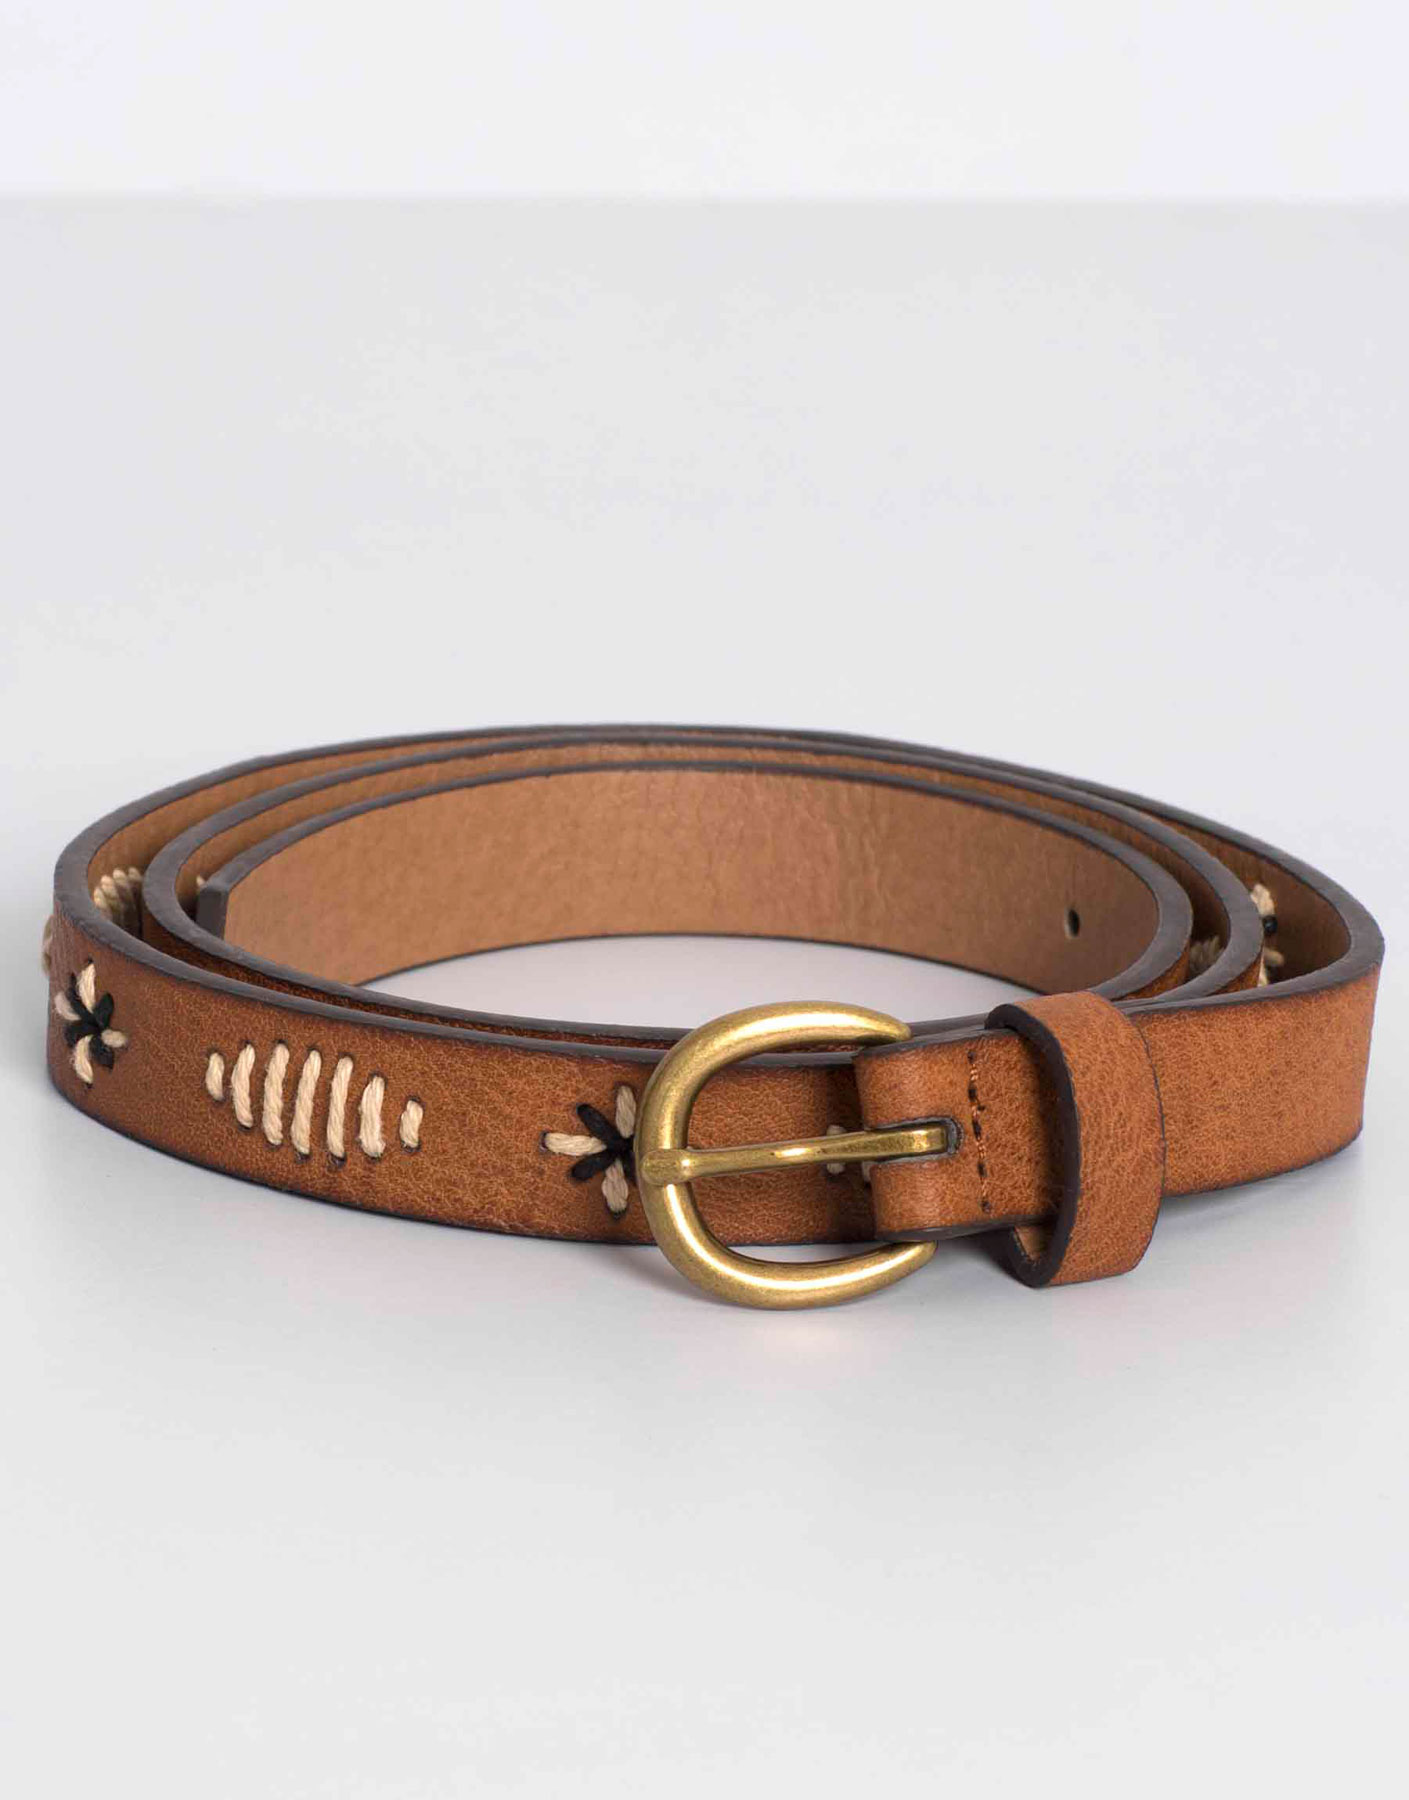 Topstitched belt